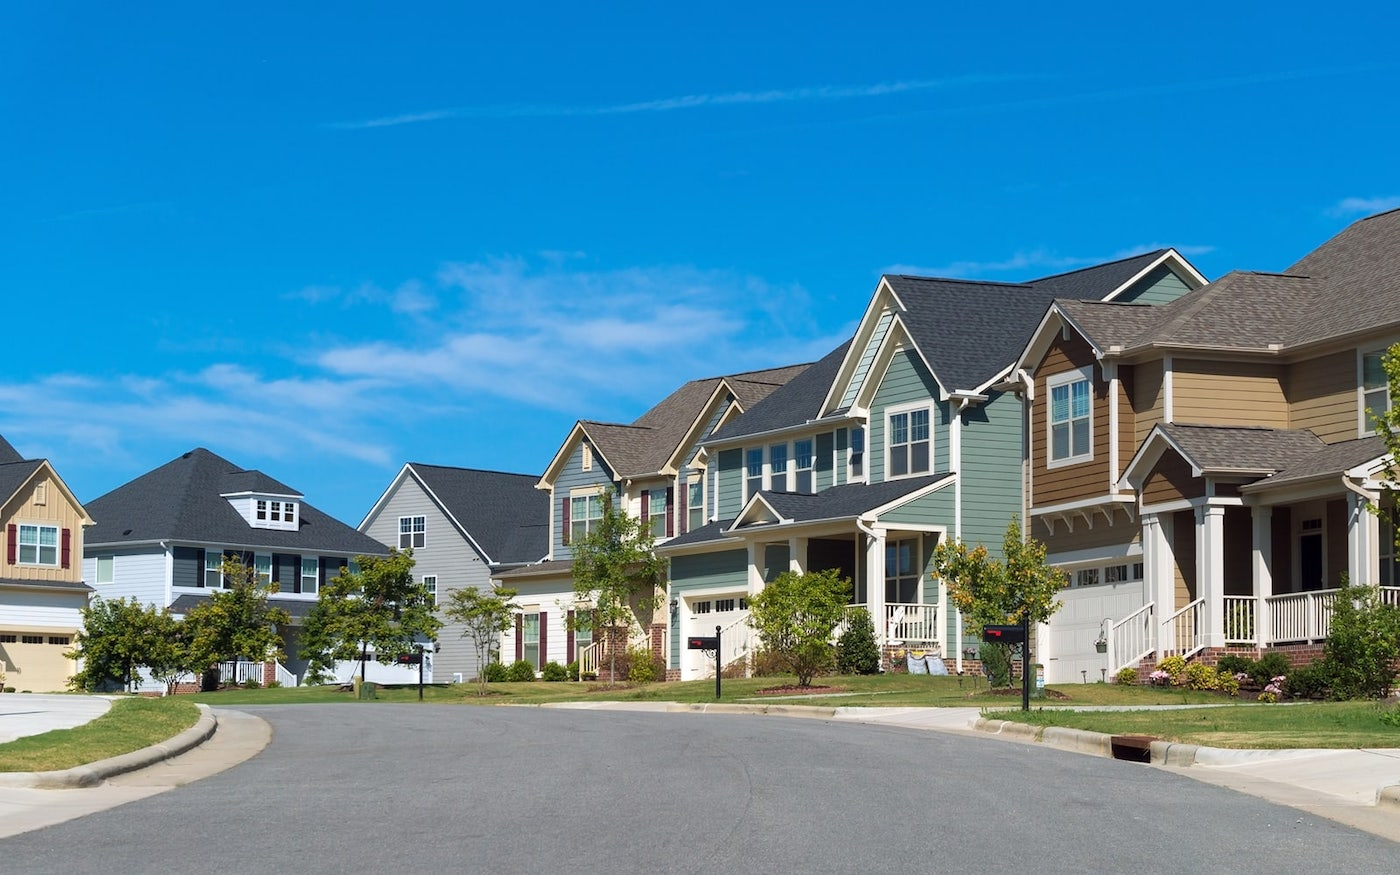 Shopping for a home? 10 tips to help you avoid impulse buying in Brentwood, CA.